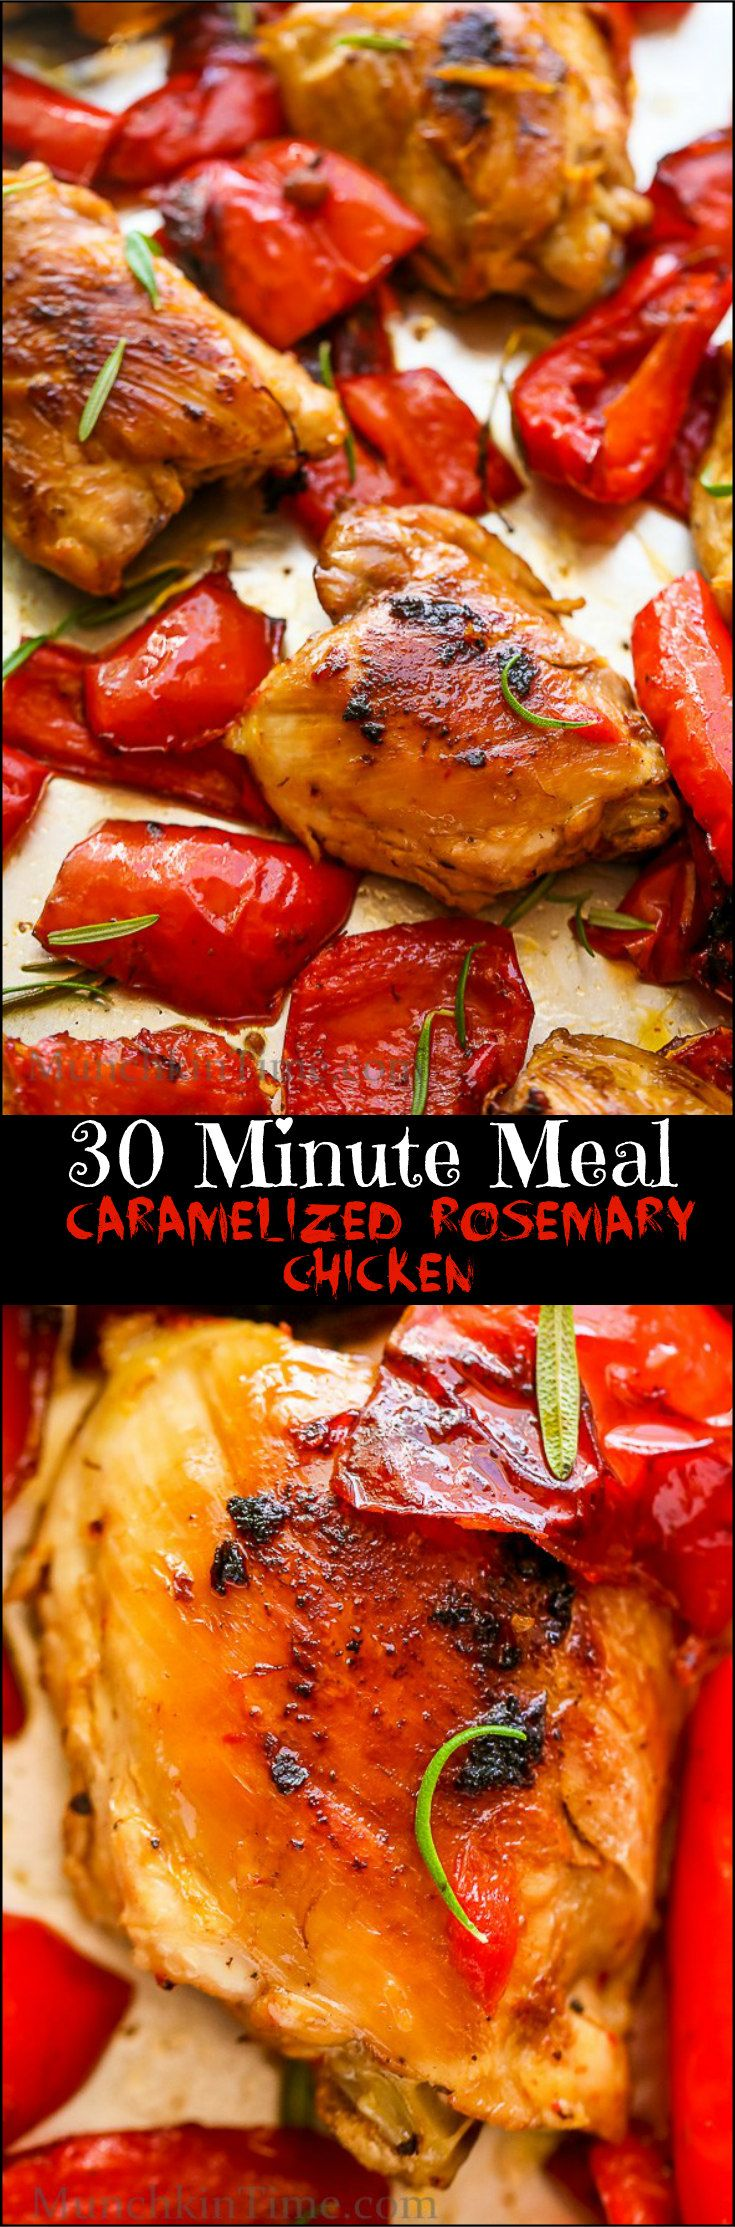 Caramelized Rosemary Chicken Recipe – delicious dinner ready in just 30-minutes.